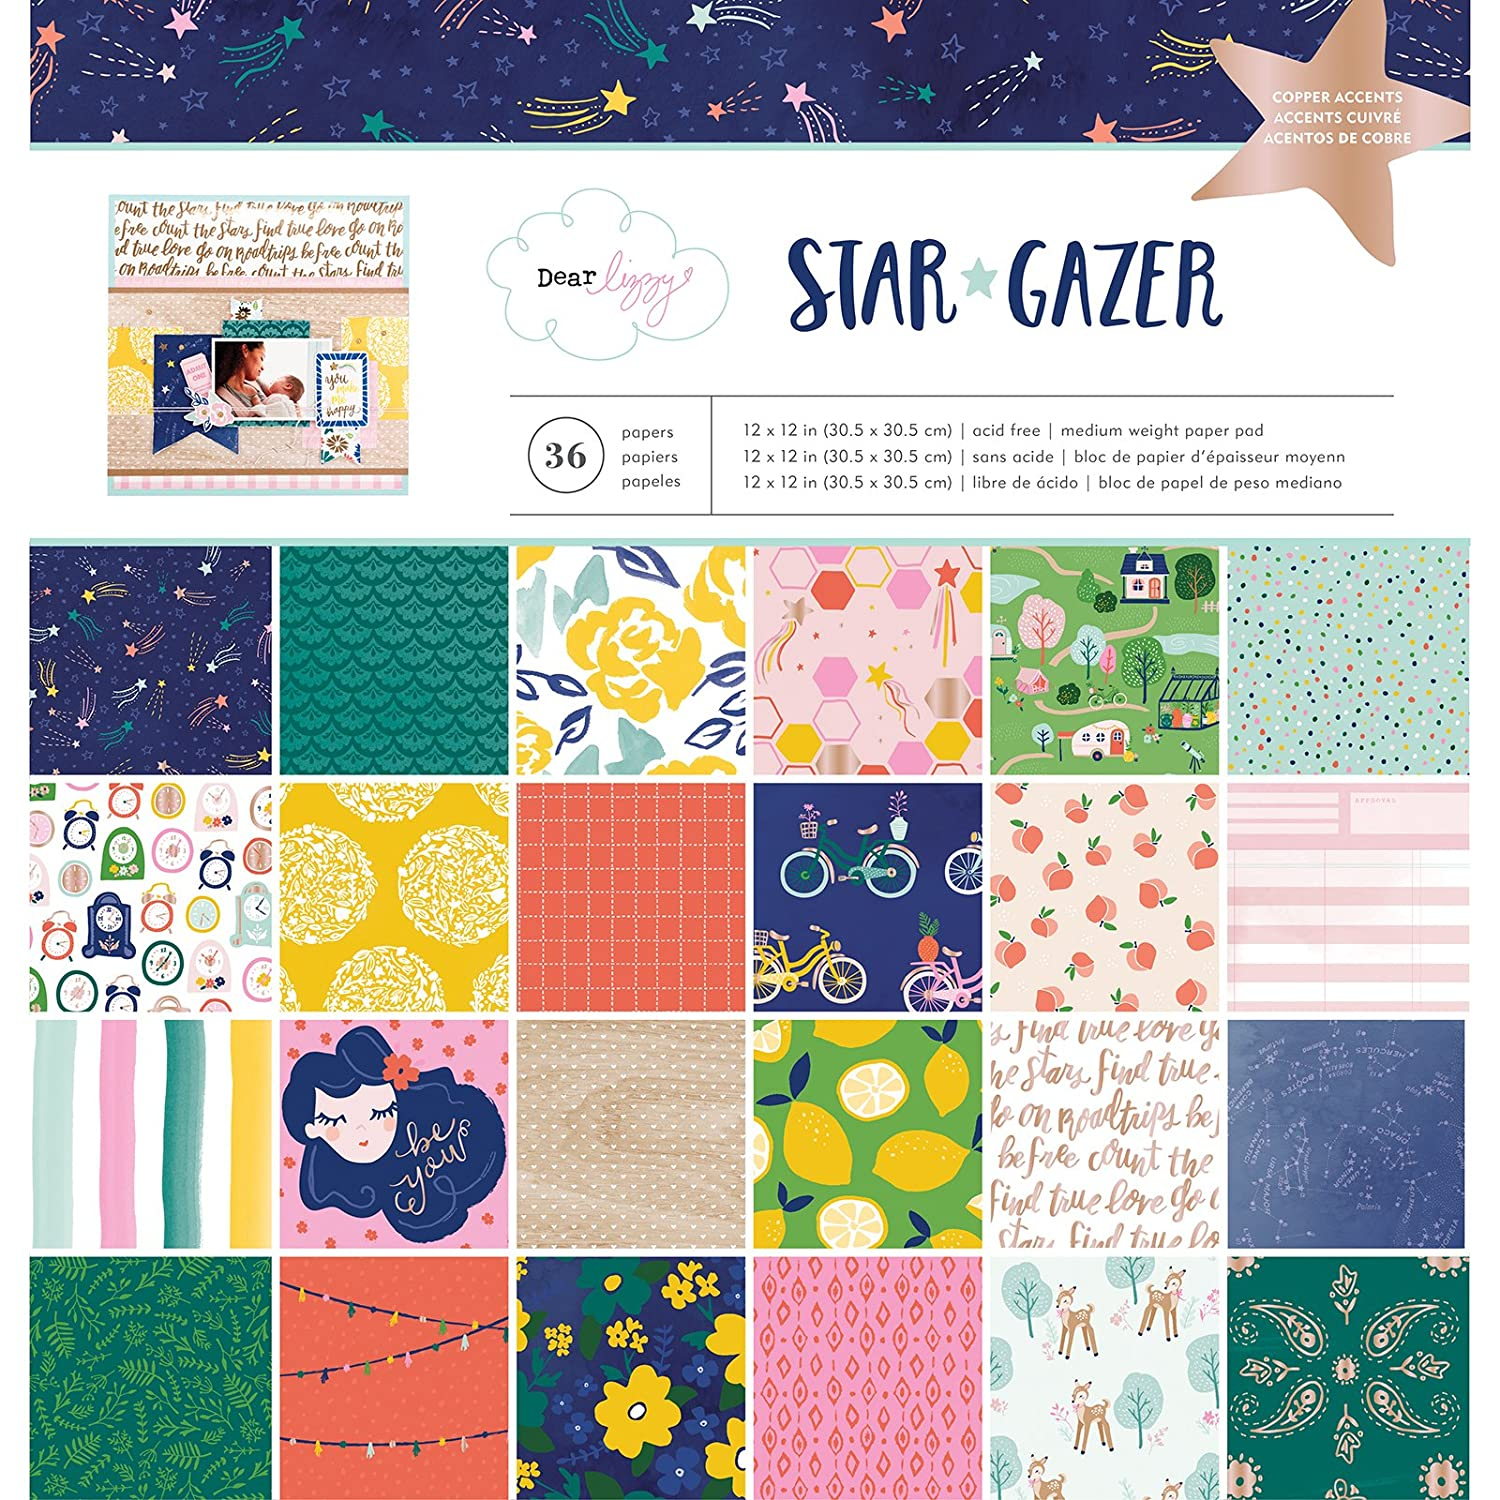 American Crafts 12 x 12 inch 36 Sheet Paper Pad with Copper Foil Dear Lizzy Star Gazer